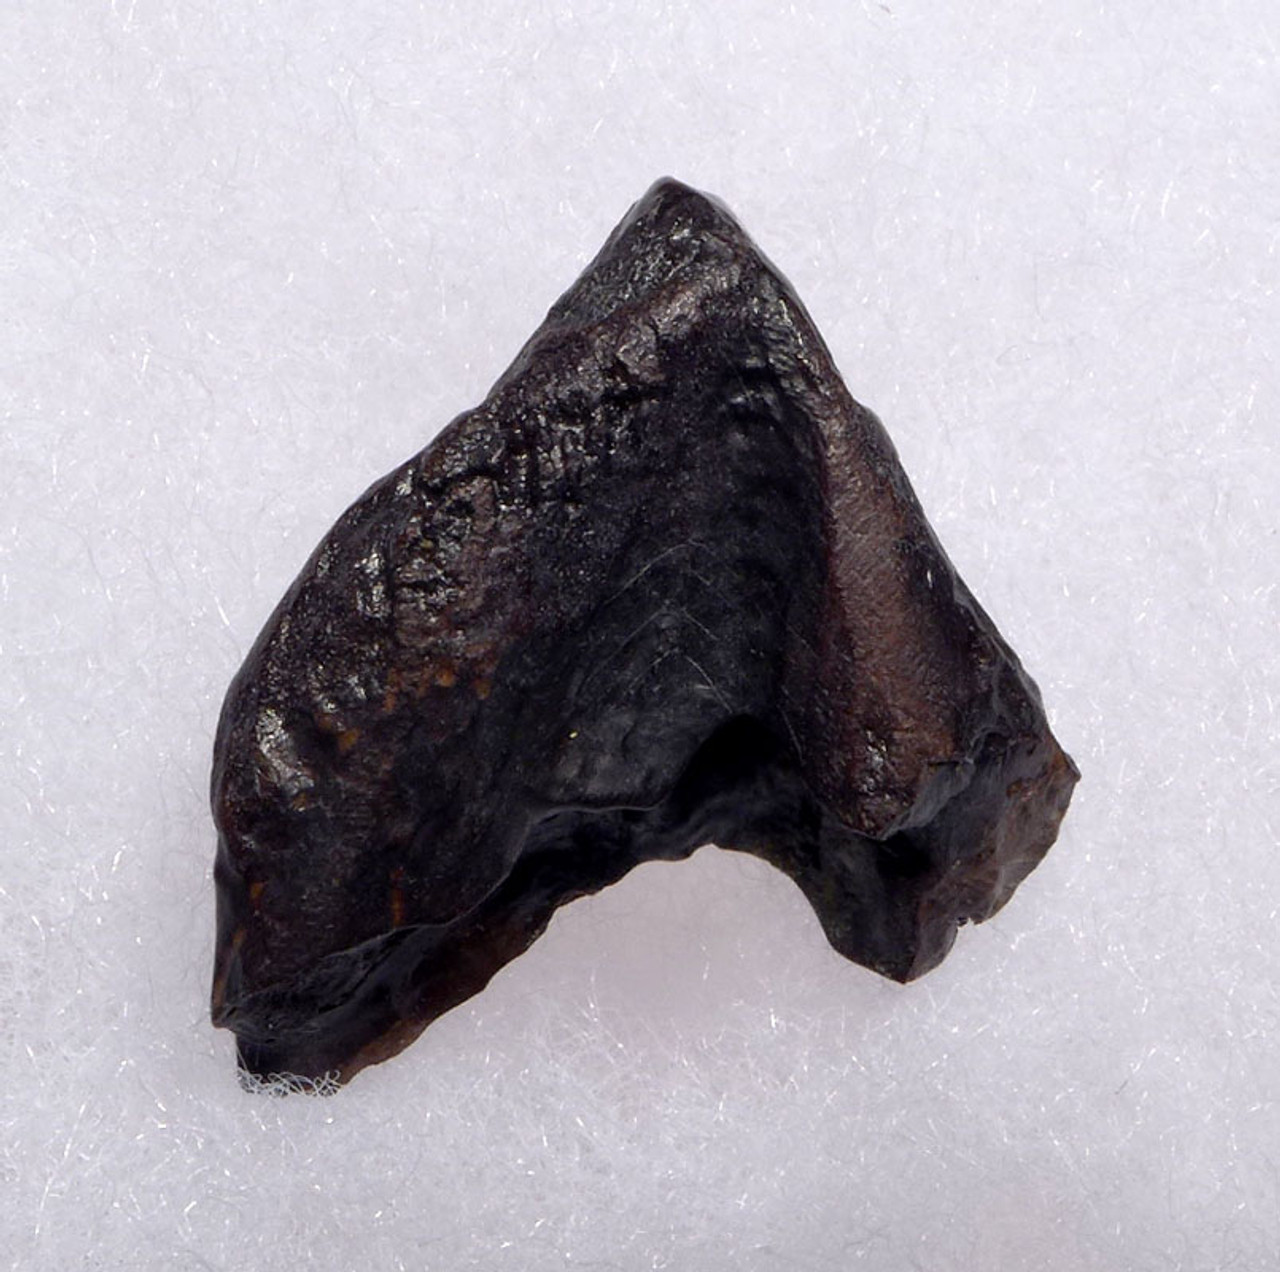 MAXIMUM SIZE CHOICE TRICERATOPS DINOSAUR TOOTH *DT19-044X